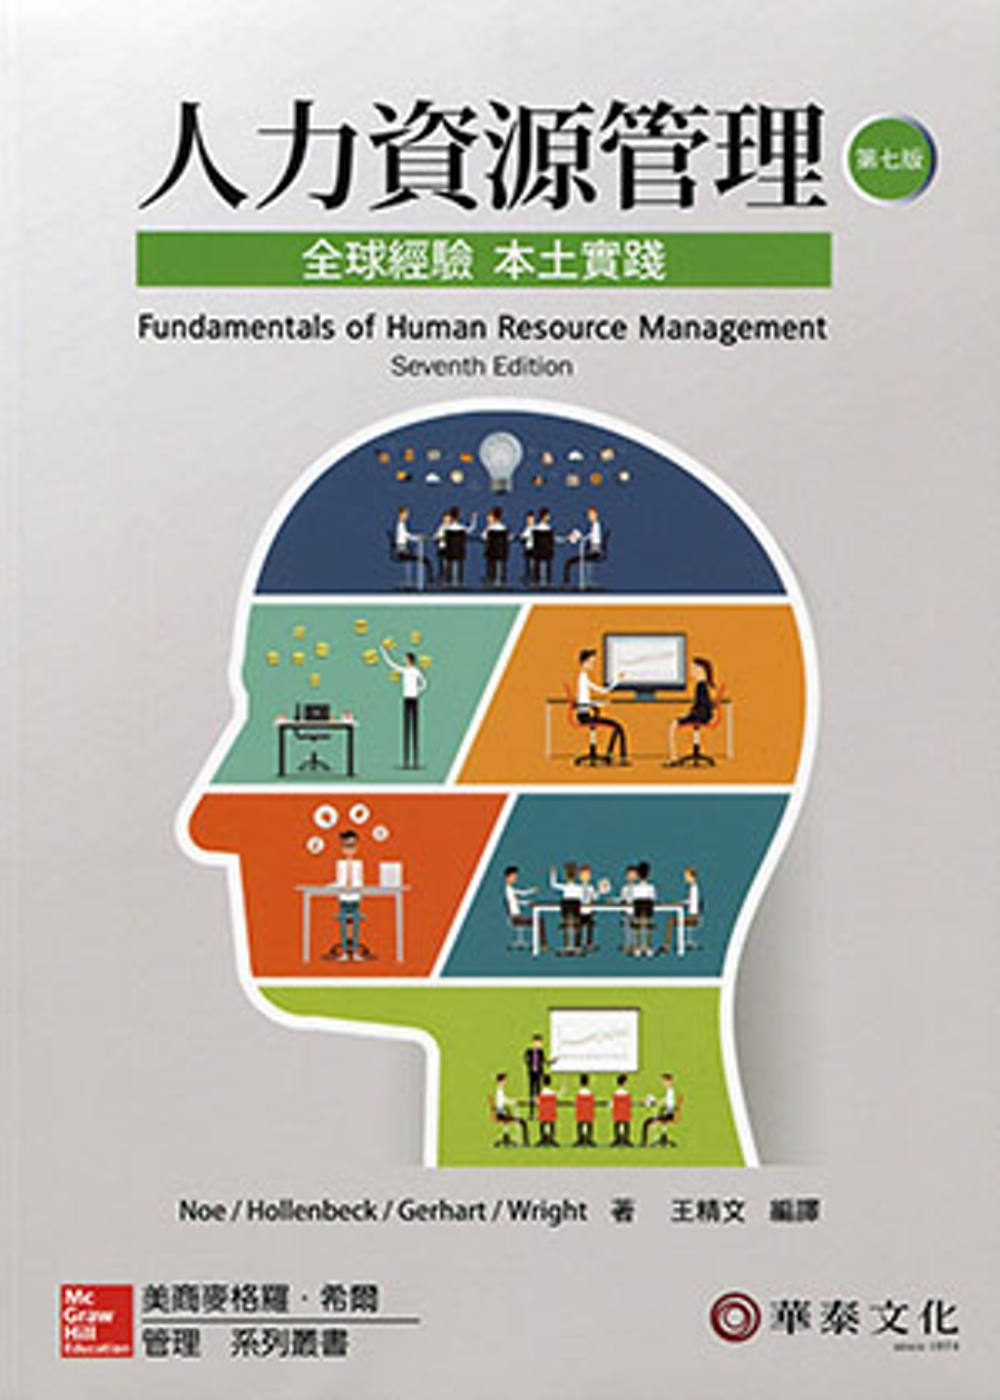 人力資源管理:全球經驗本土實踐(Noe/Fundamentals of Human Resource Management 7e)